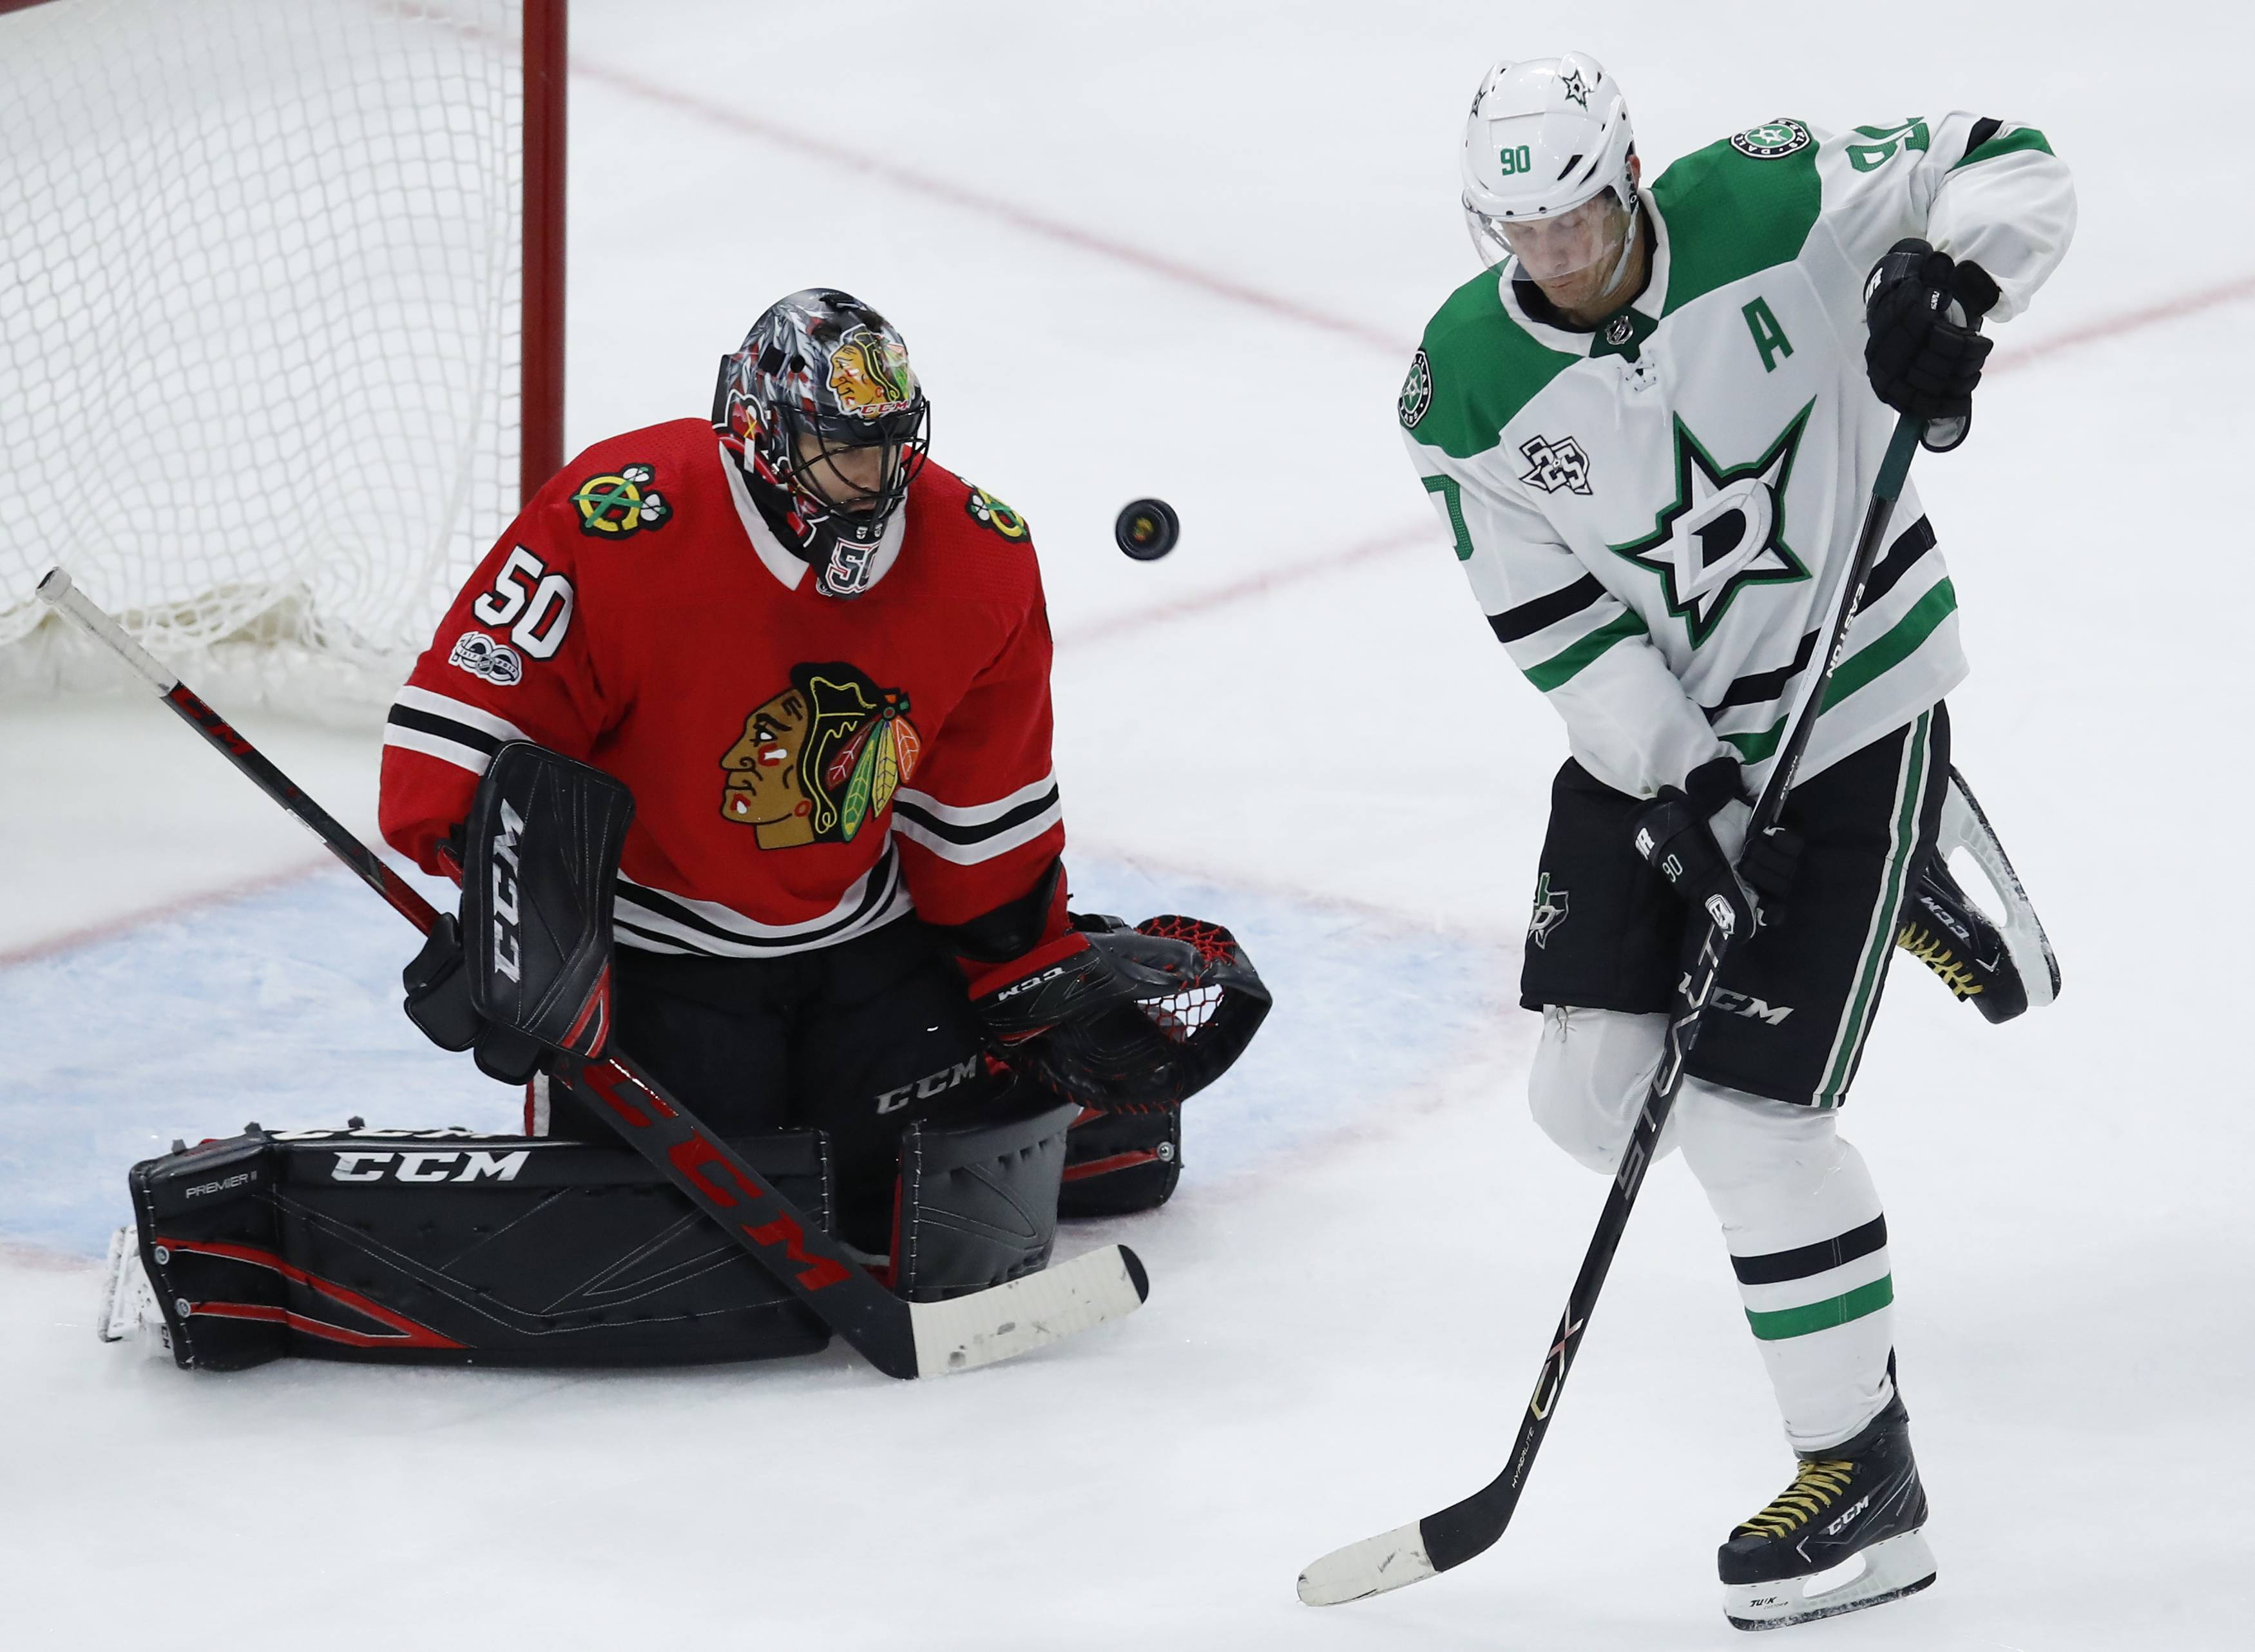 Chicago Blackhawks' Crawford hits the ice, but overall status still unknown